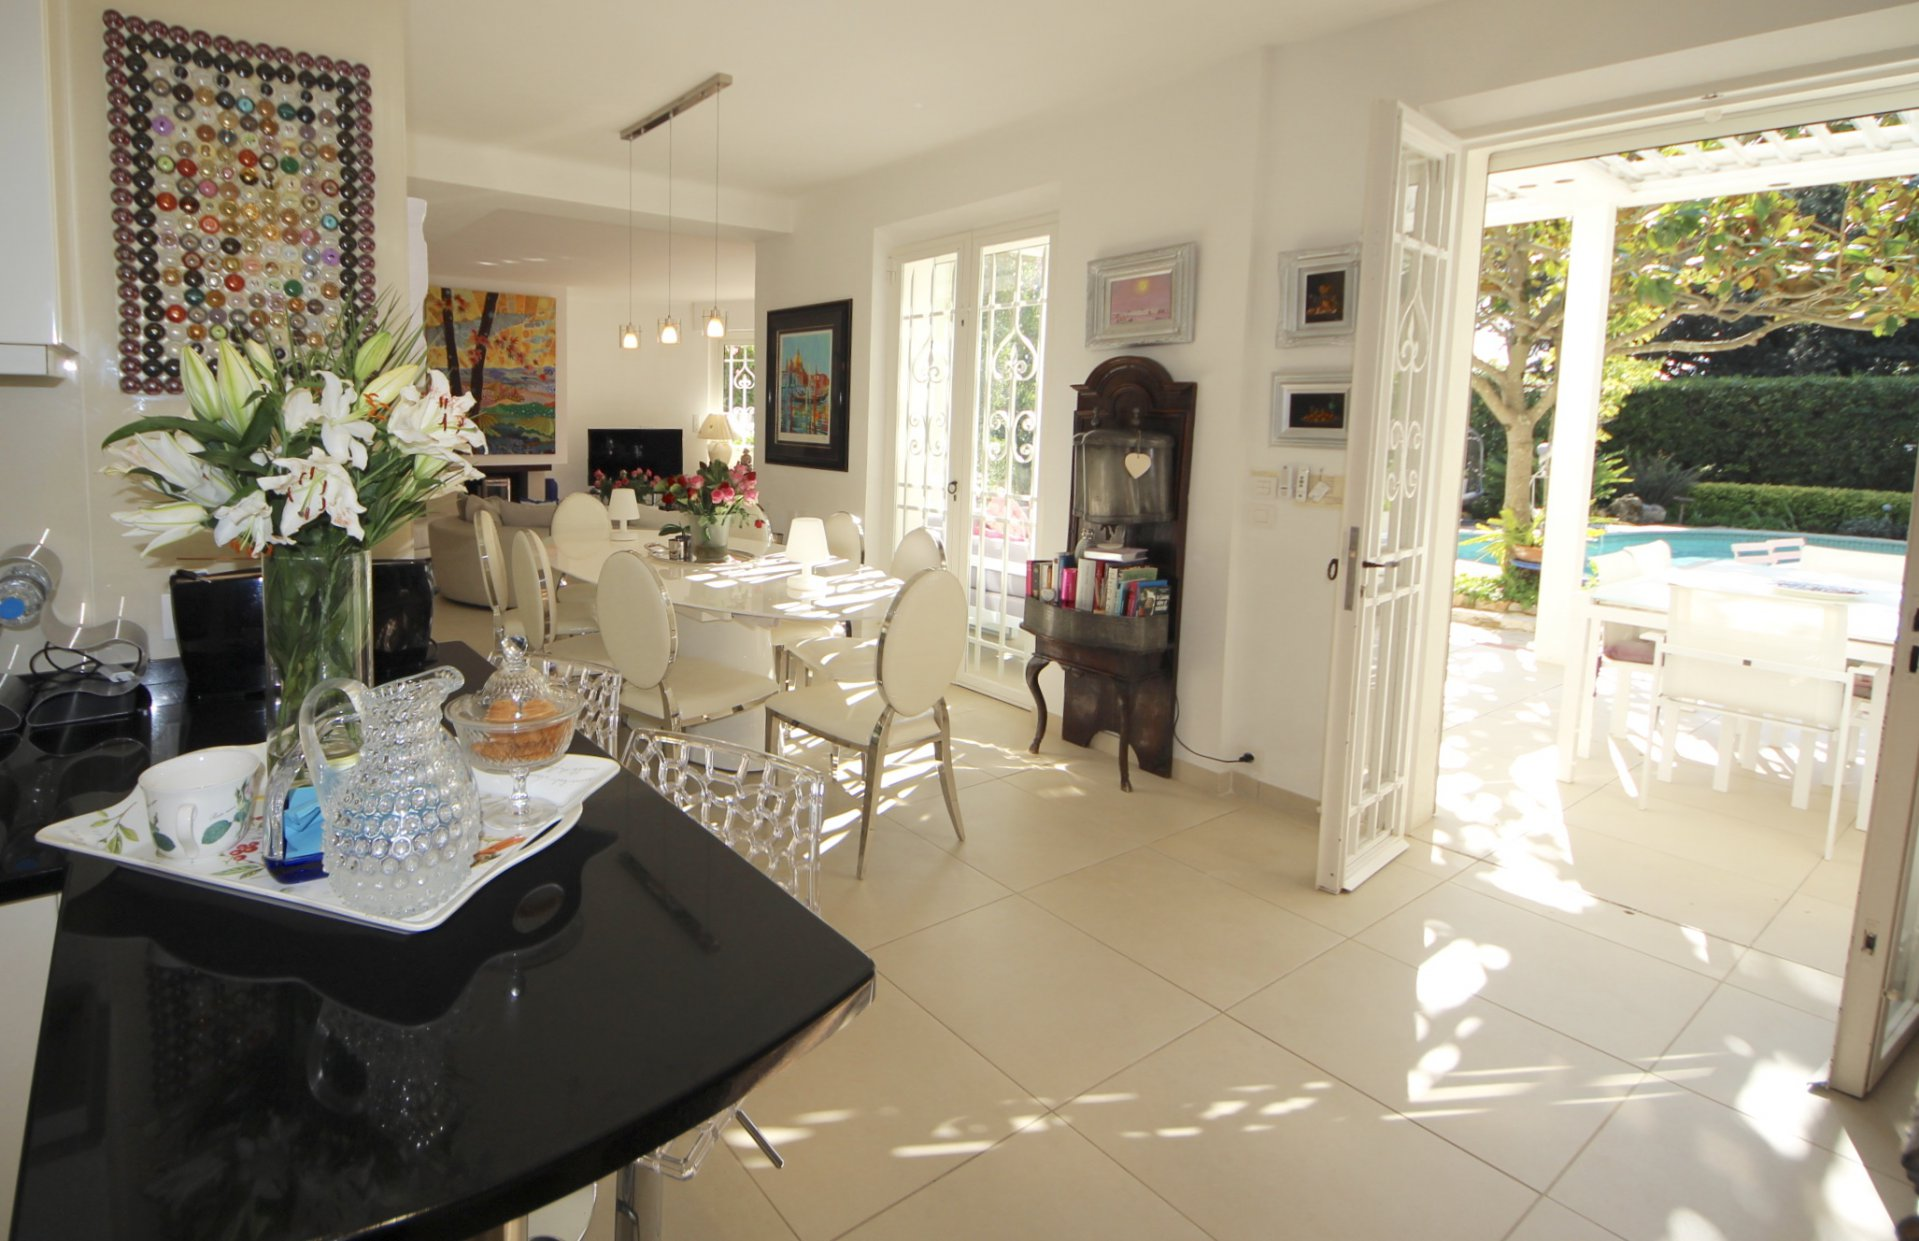 Cannes Montfleury, superb renovated provencal villa in absolute calm